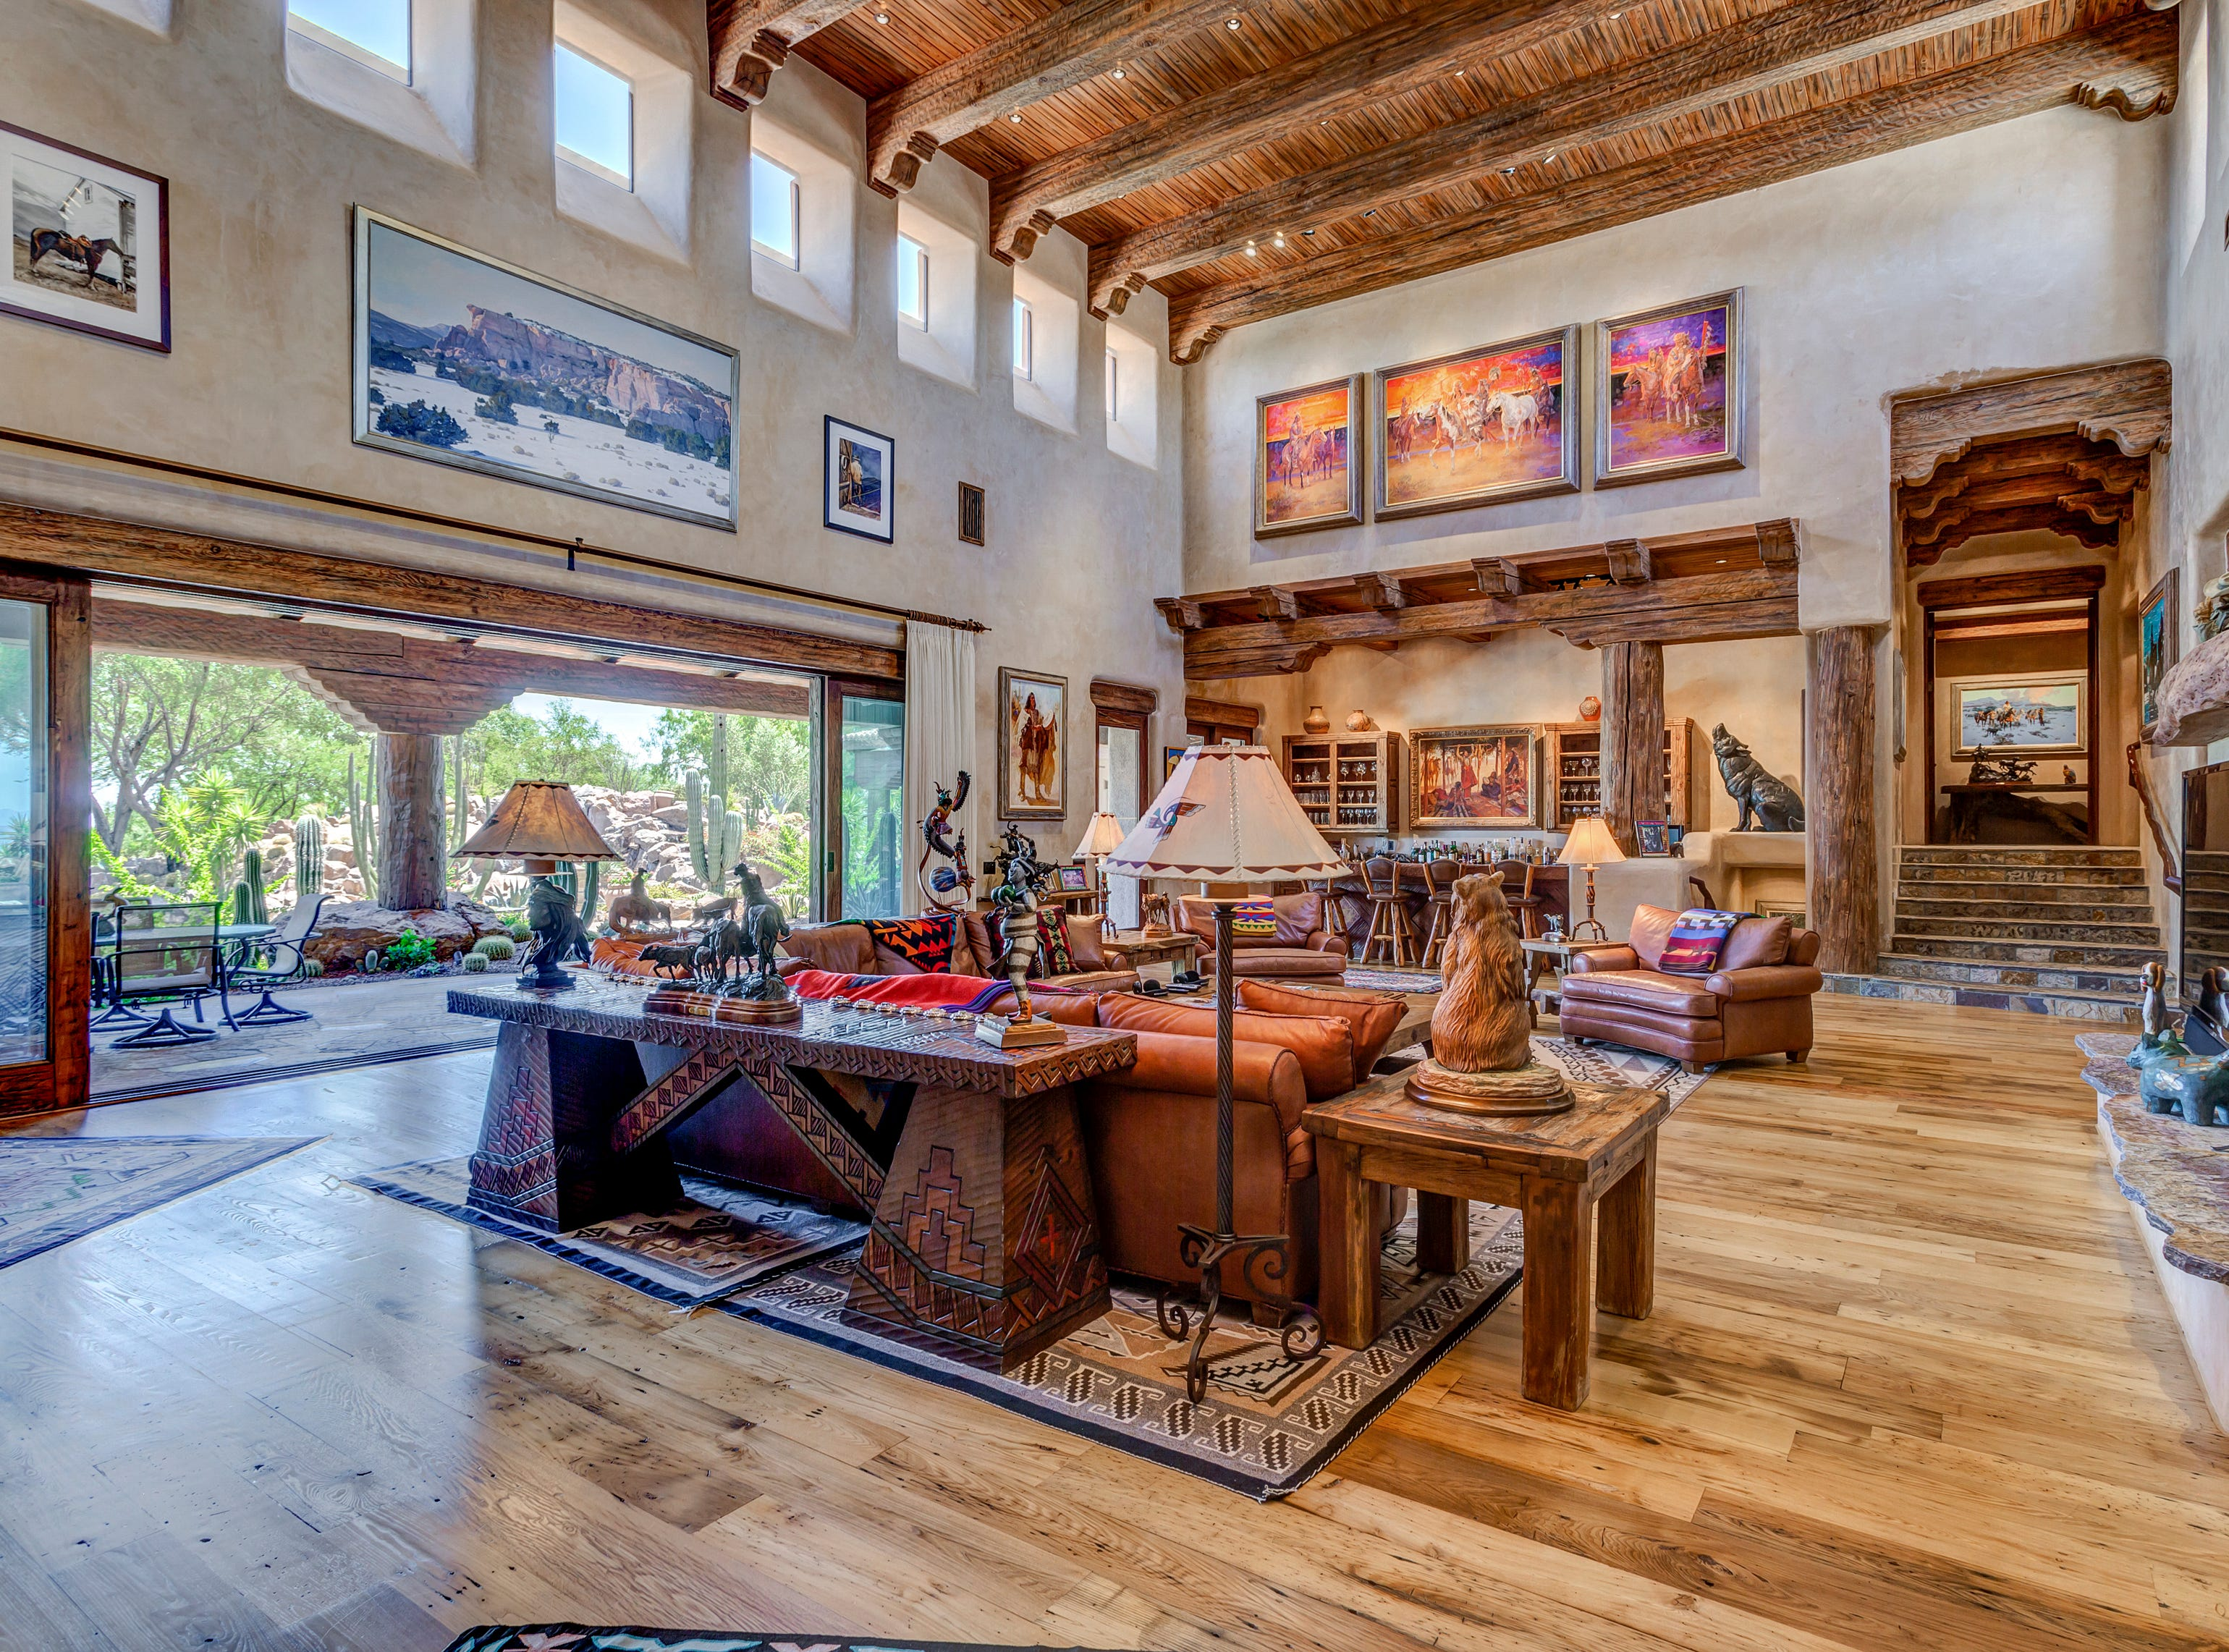 David and Linda Durbano purchased this mansion in Scottsdale for $5.7M.